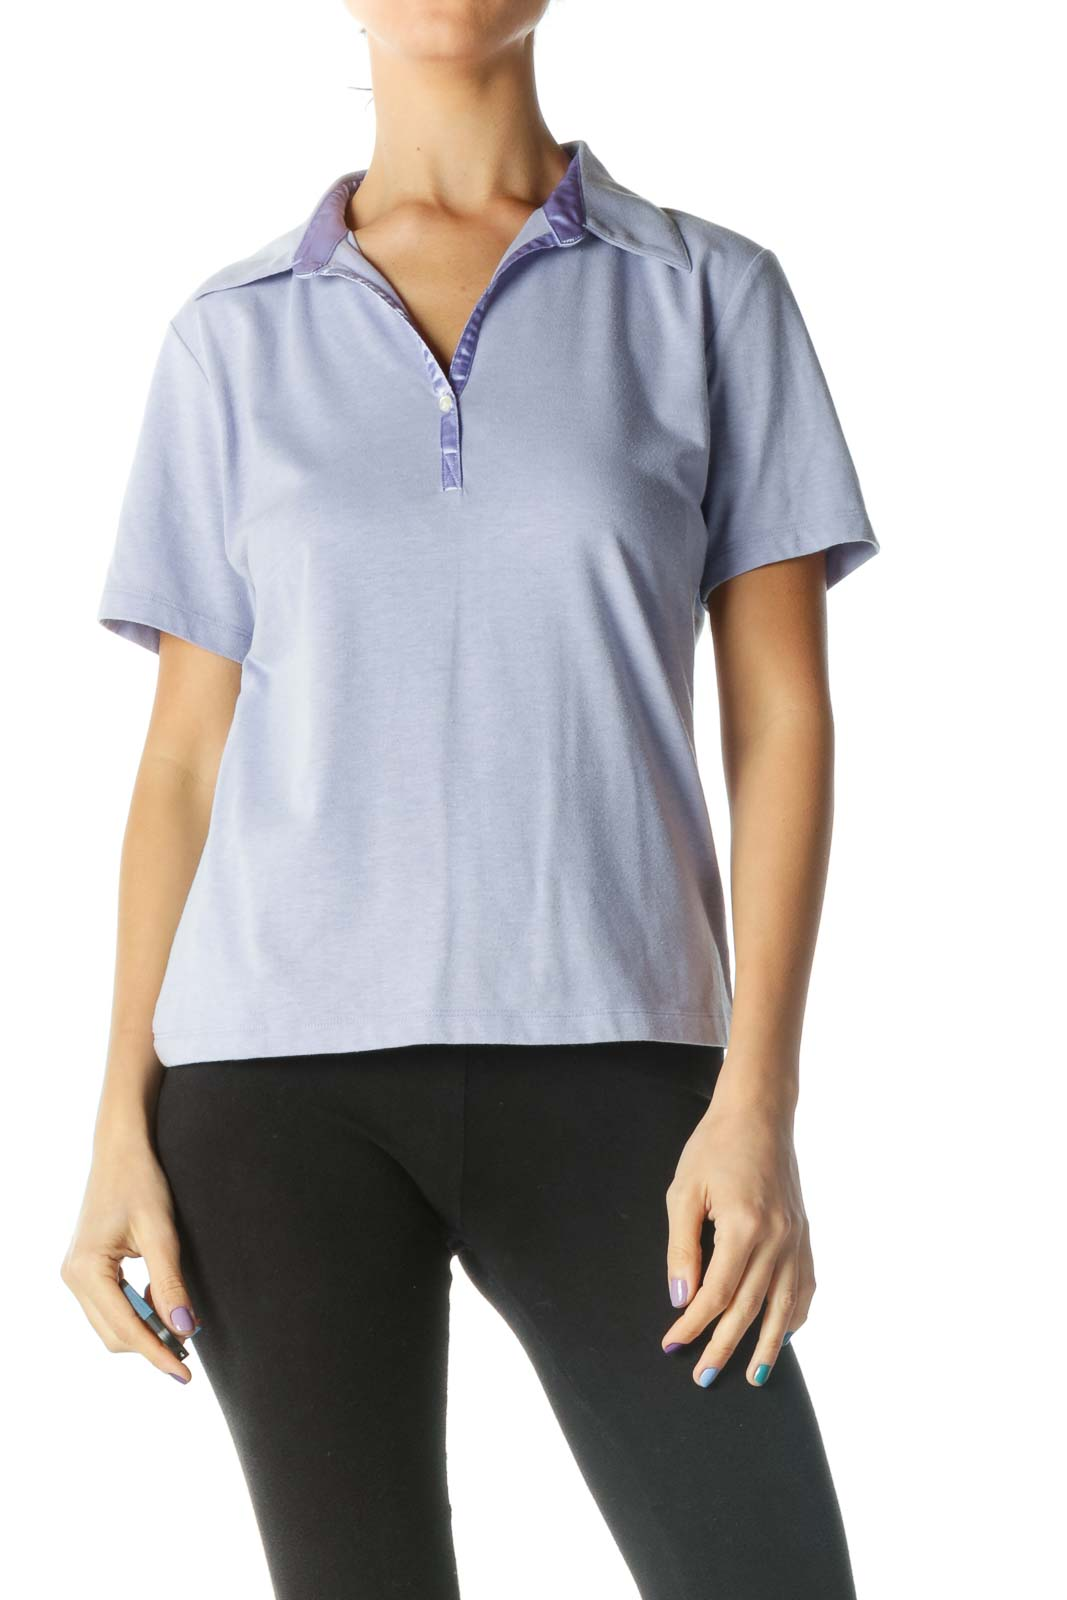 Violet Short Sleeve Collared Polo Shirt Front